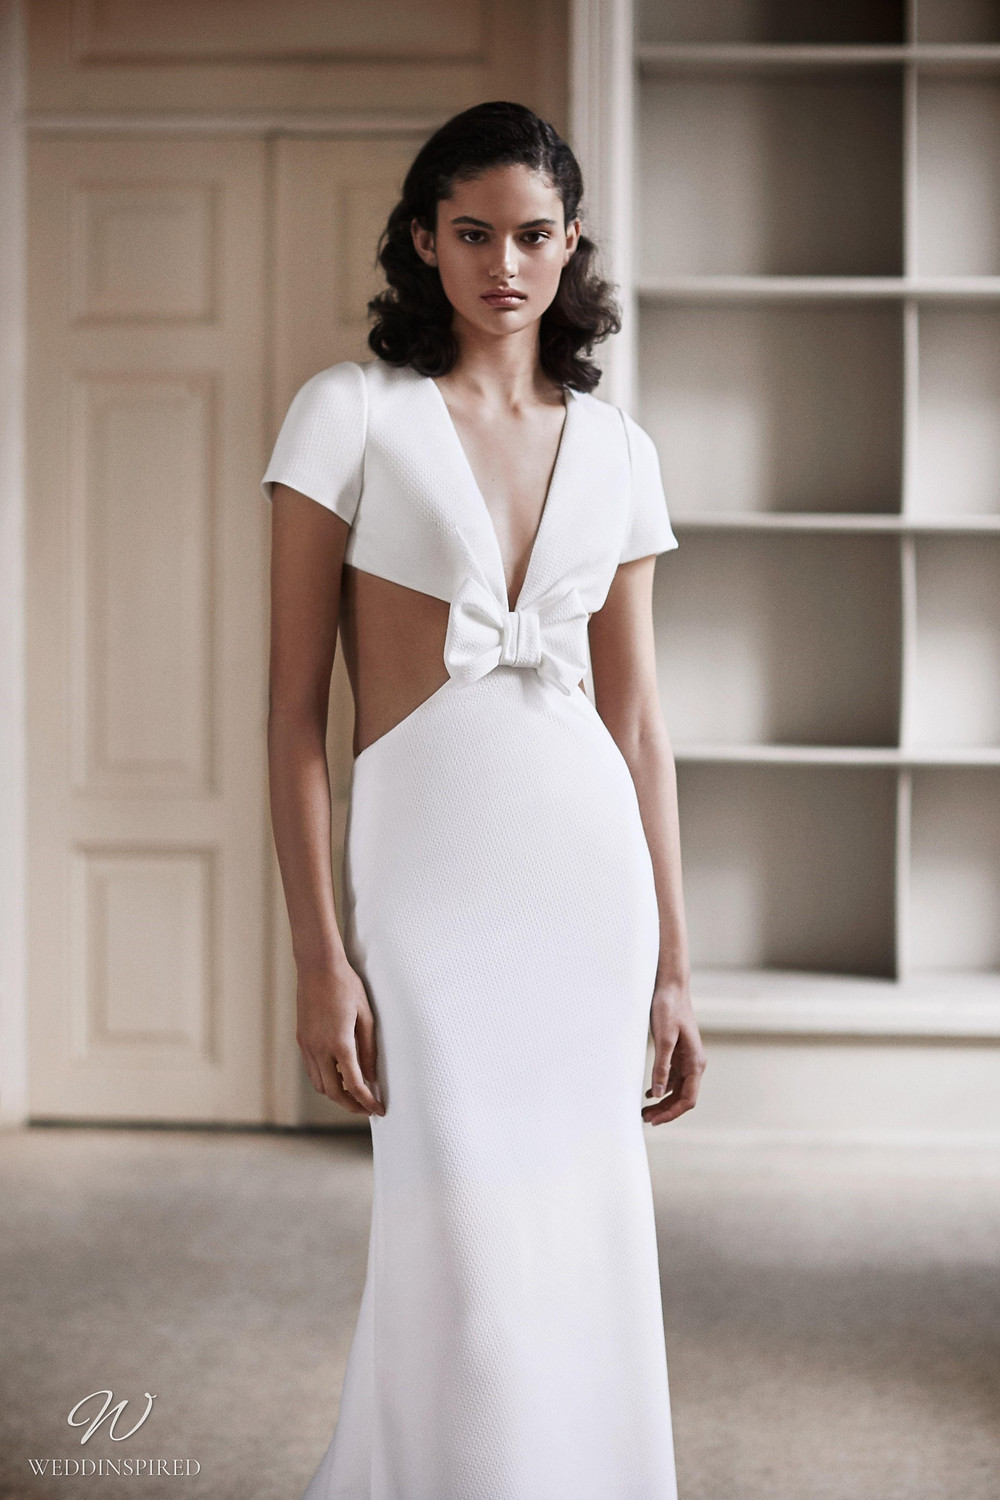 A Viktor & Rolf 2021 mermaid wedding dress with side cut outs and a bow